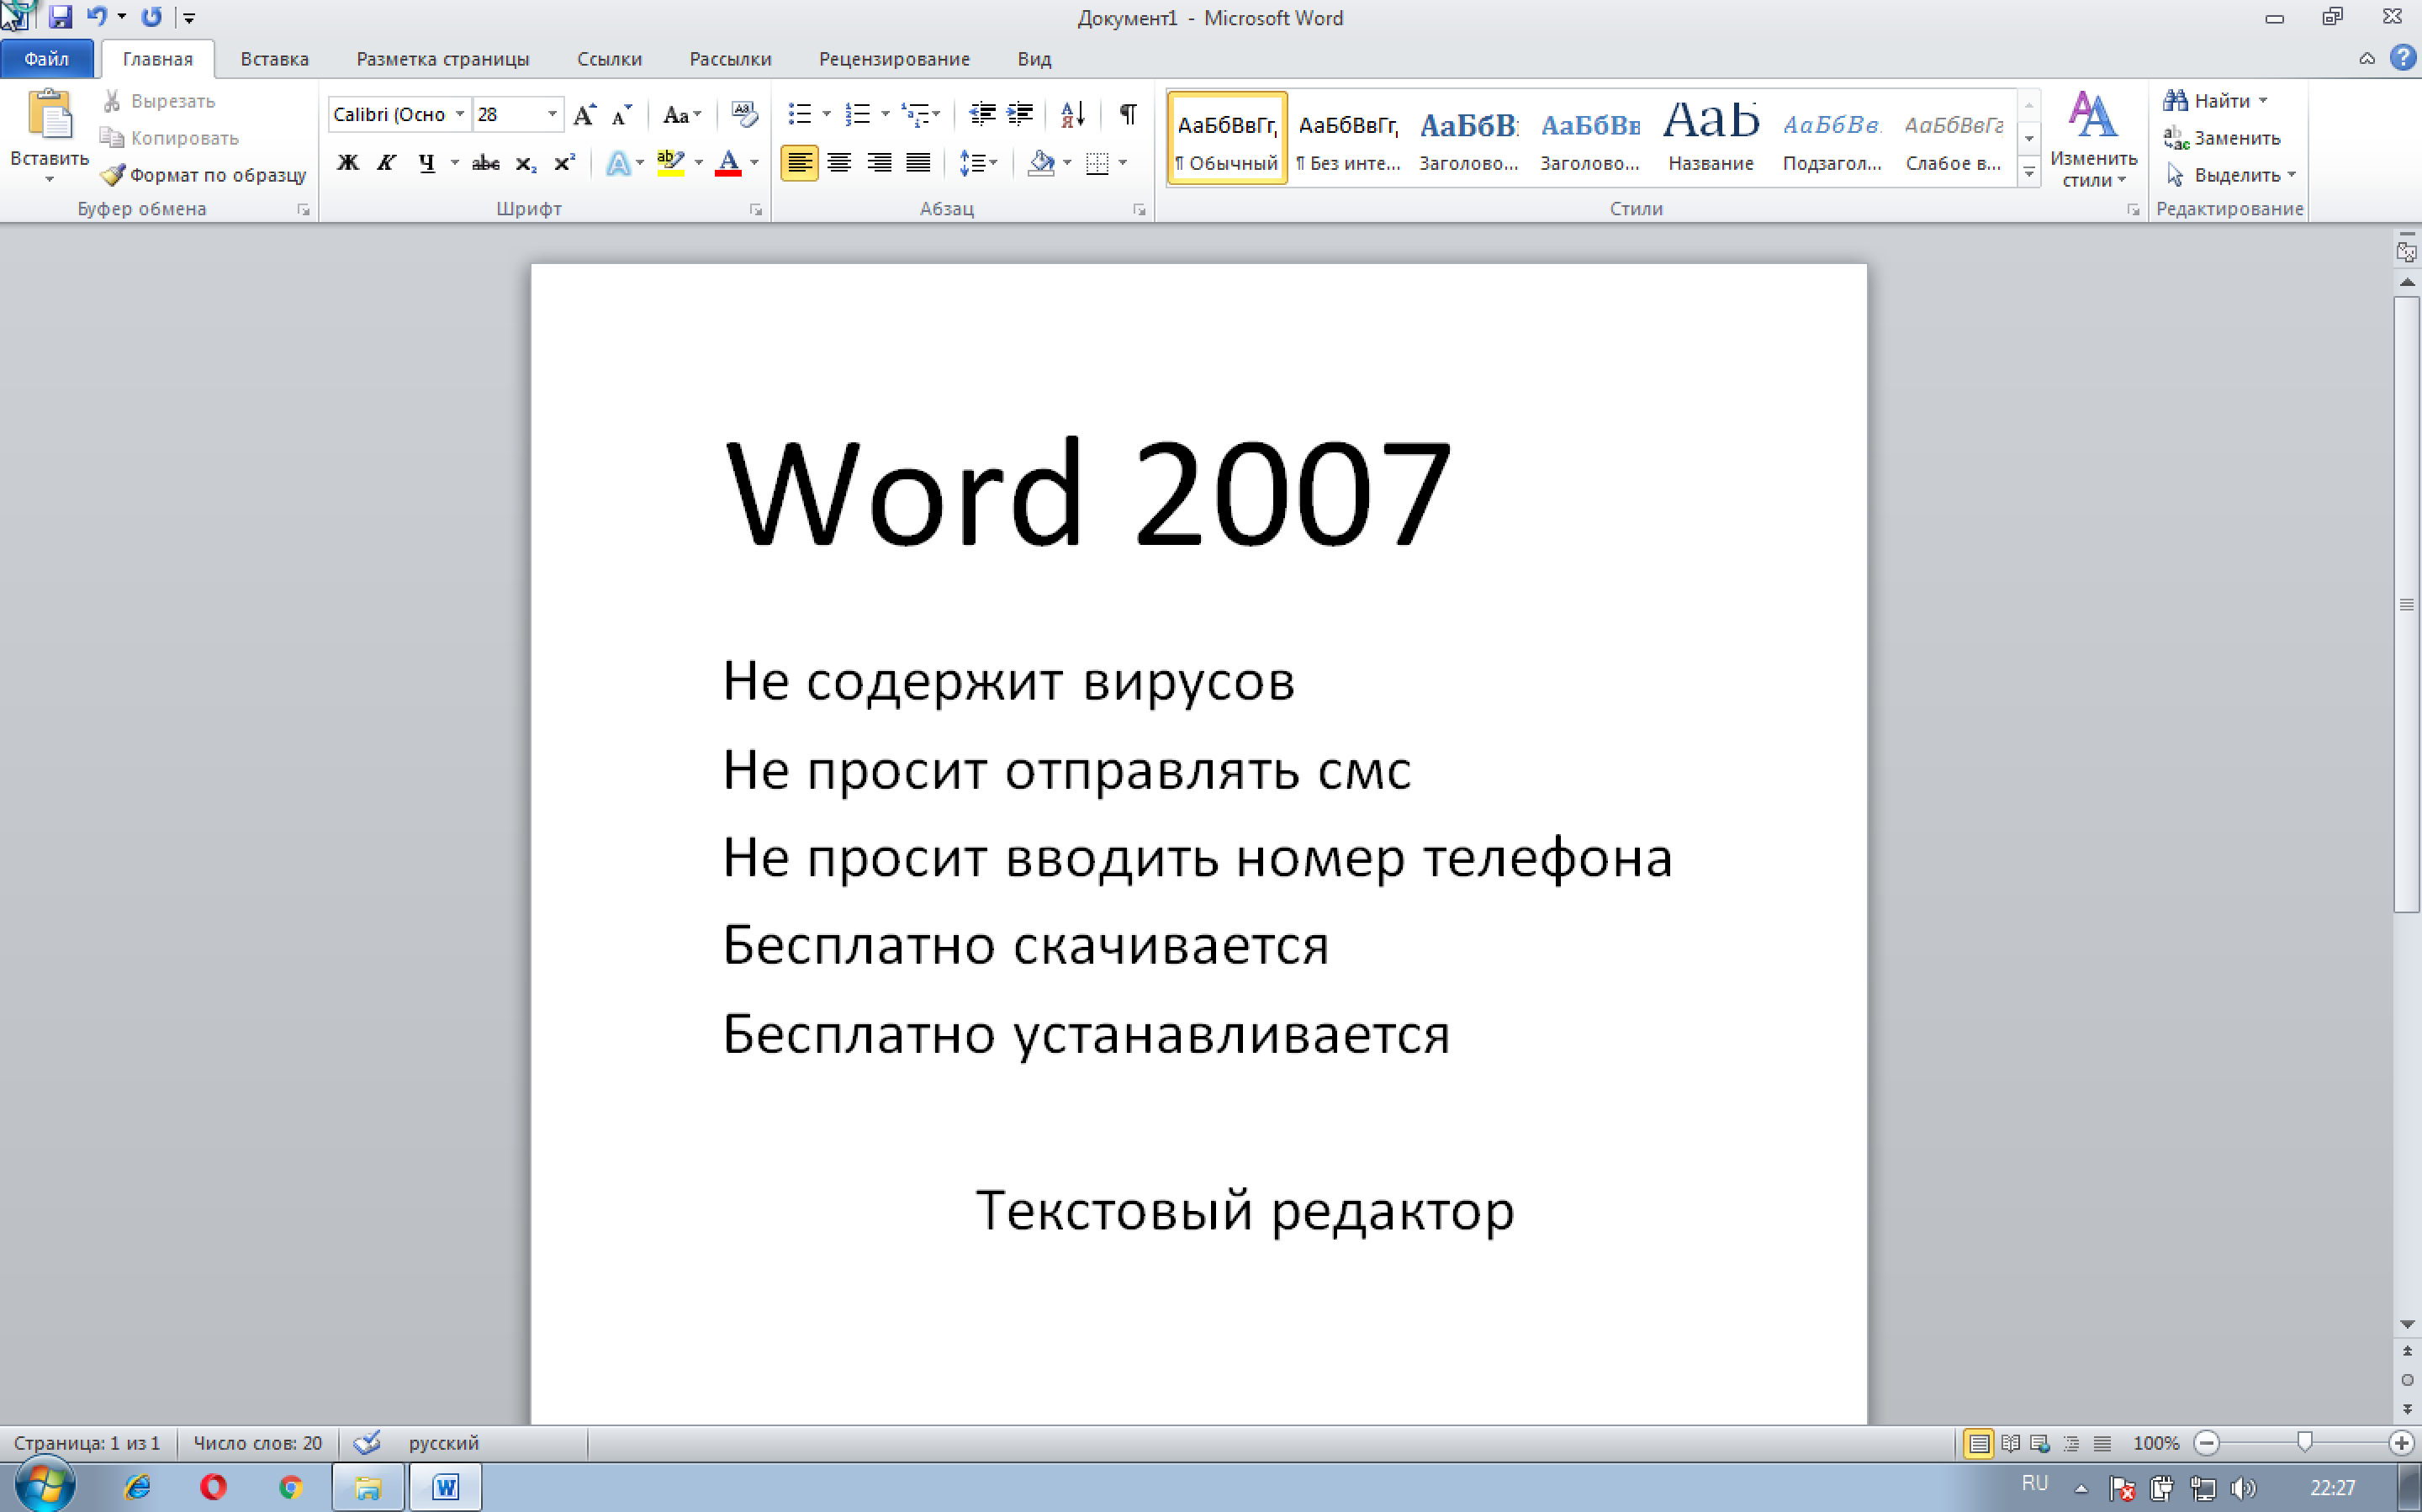 Microsoft word for free 2007 ideal. Vistalist. Co.